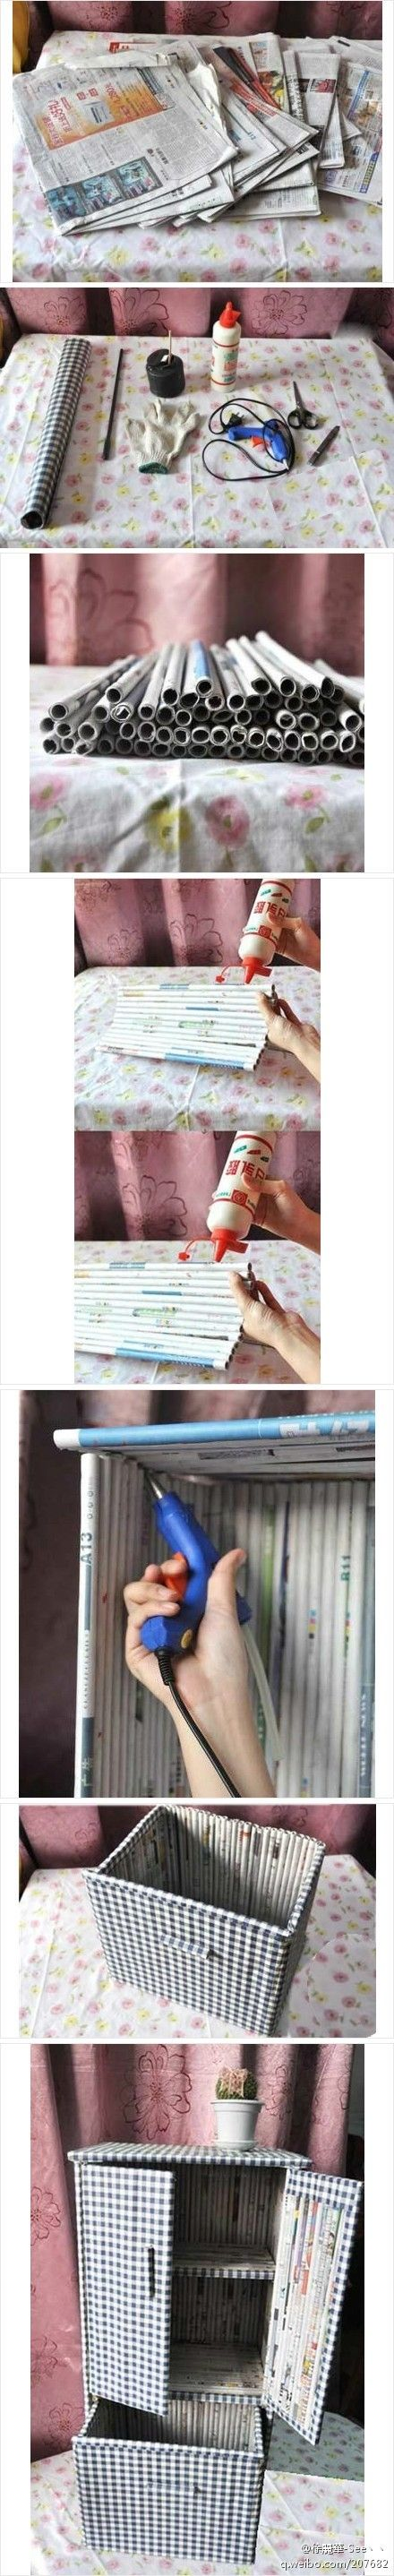 Decor Hacks Diy Newspaper Furniture Great Way To